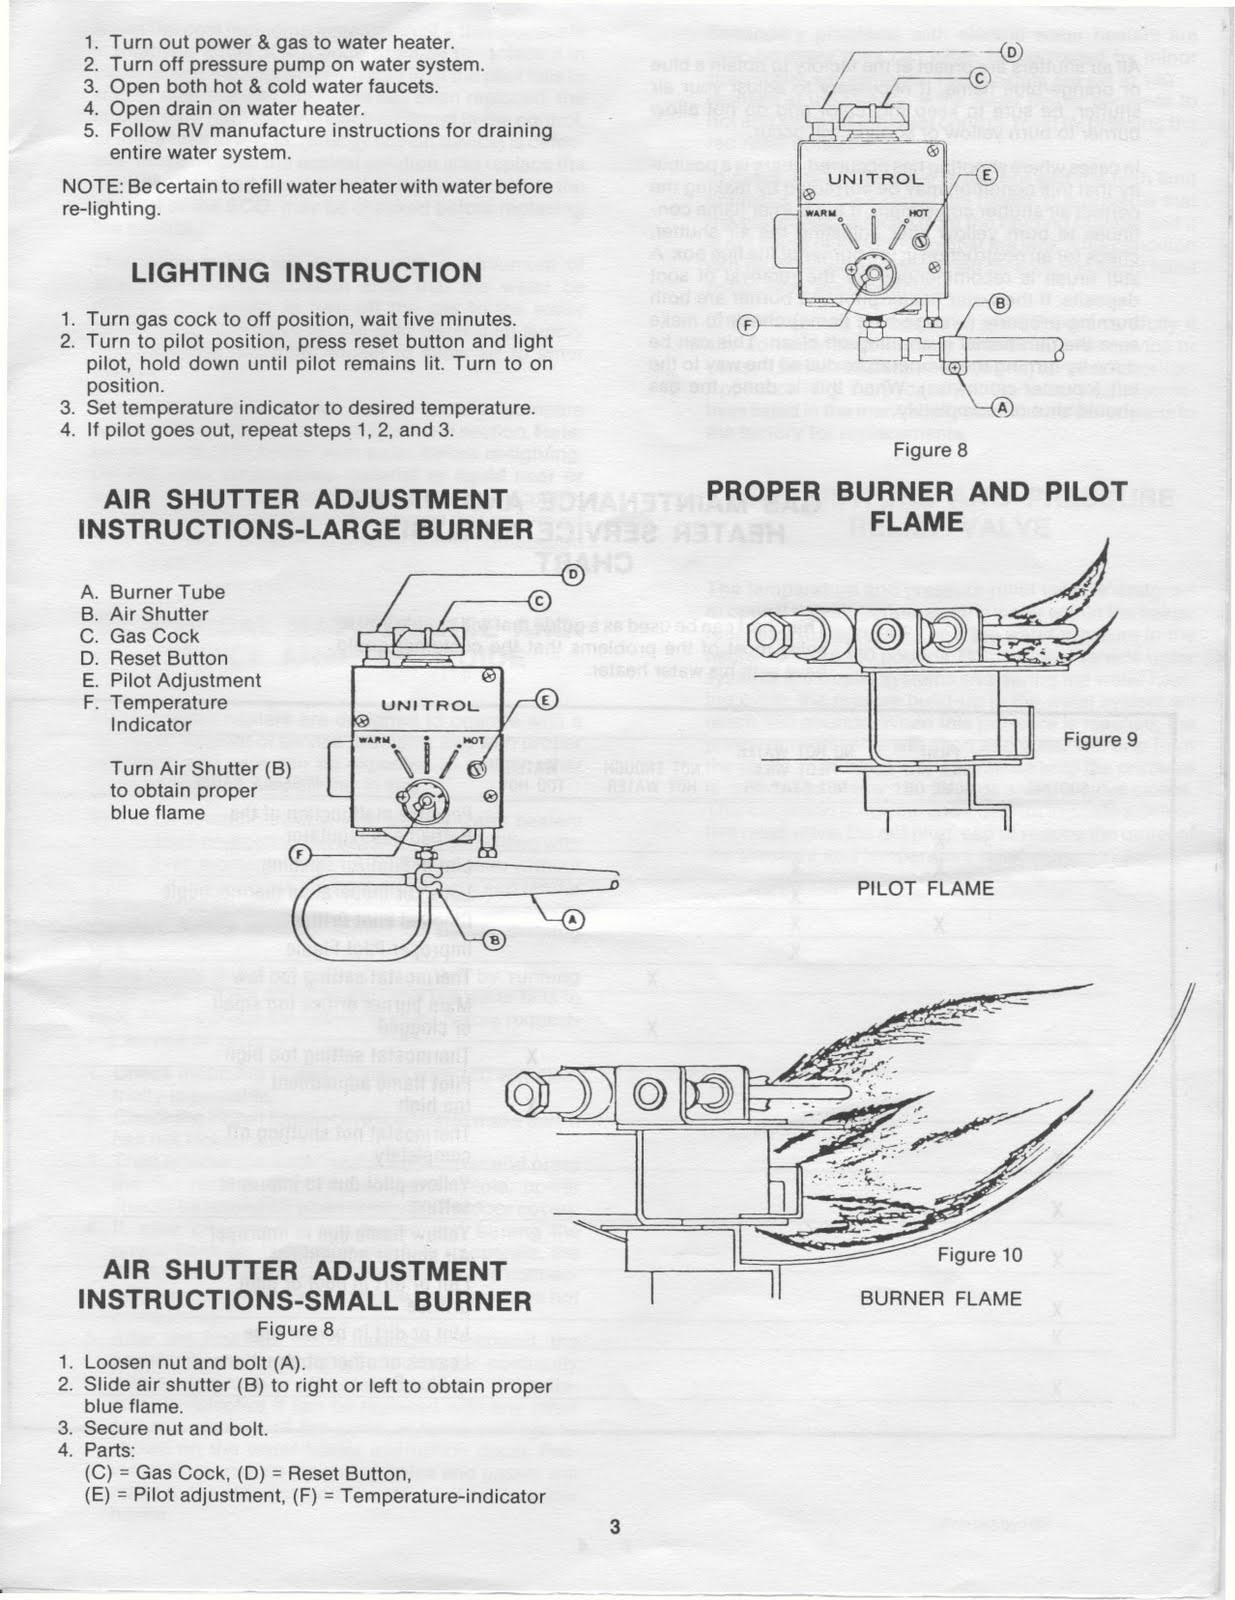 hight resolution of mor flo water heater installation and service manual 6500015